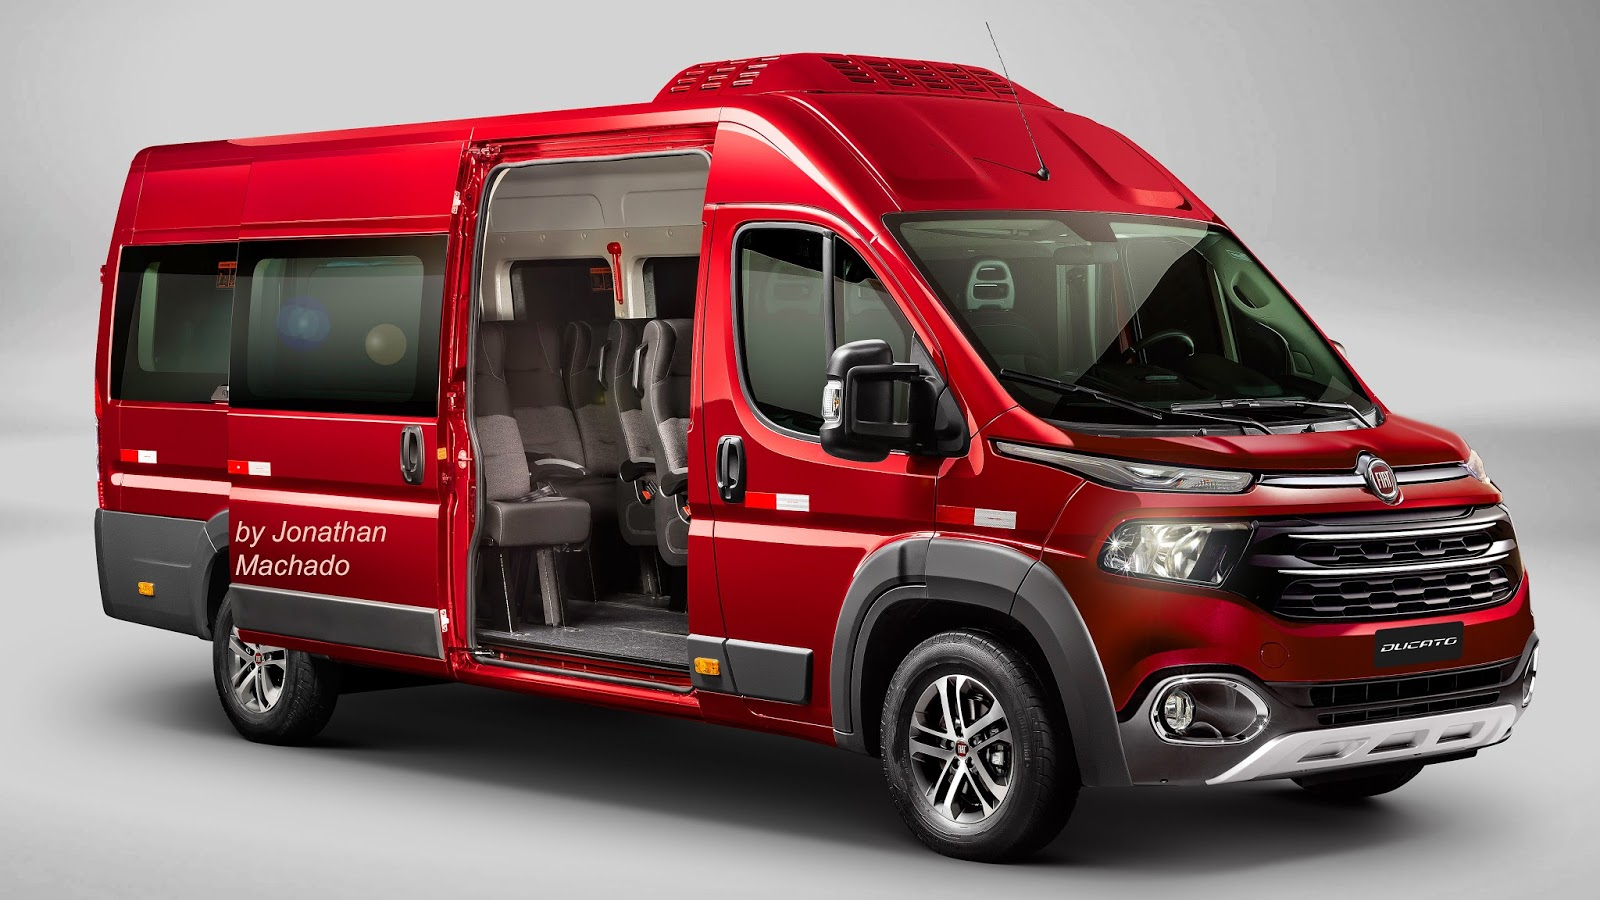 photoshop fiat ducato 2020 facelift ducatoro toro van fiatducato fiattoro carwp. Black Bedroom Furniture Sets. Home Design Ideas